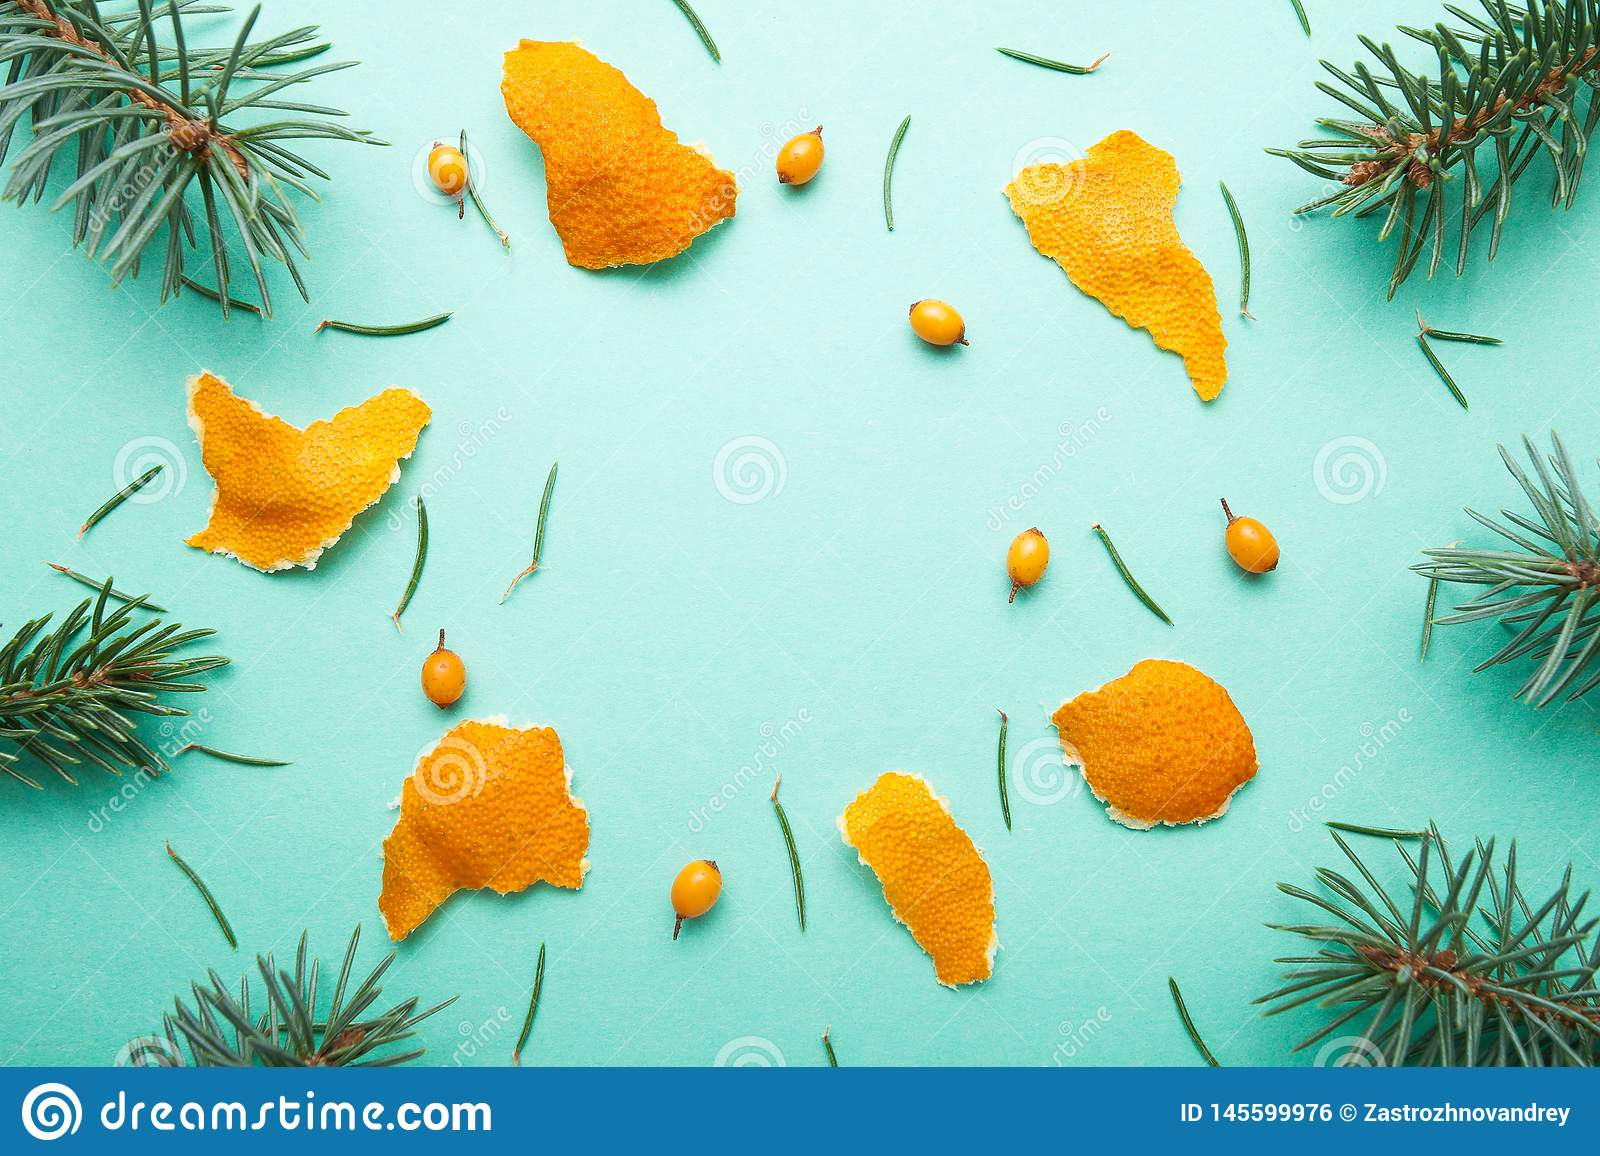 Christmas background from Natural Branches and Tangerines. Flat Lay